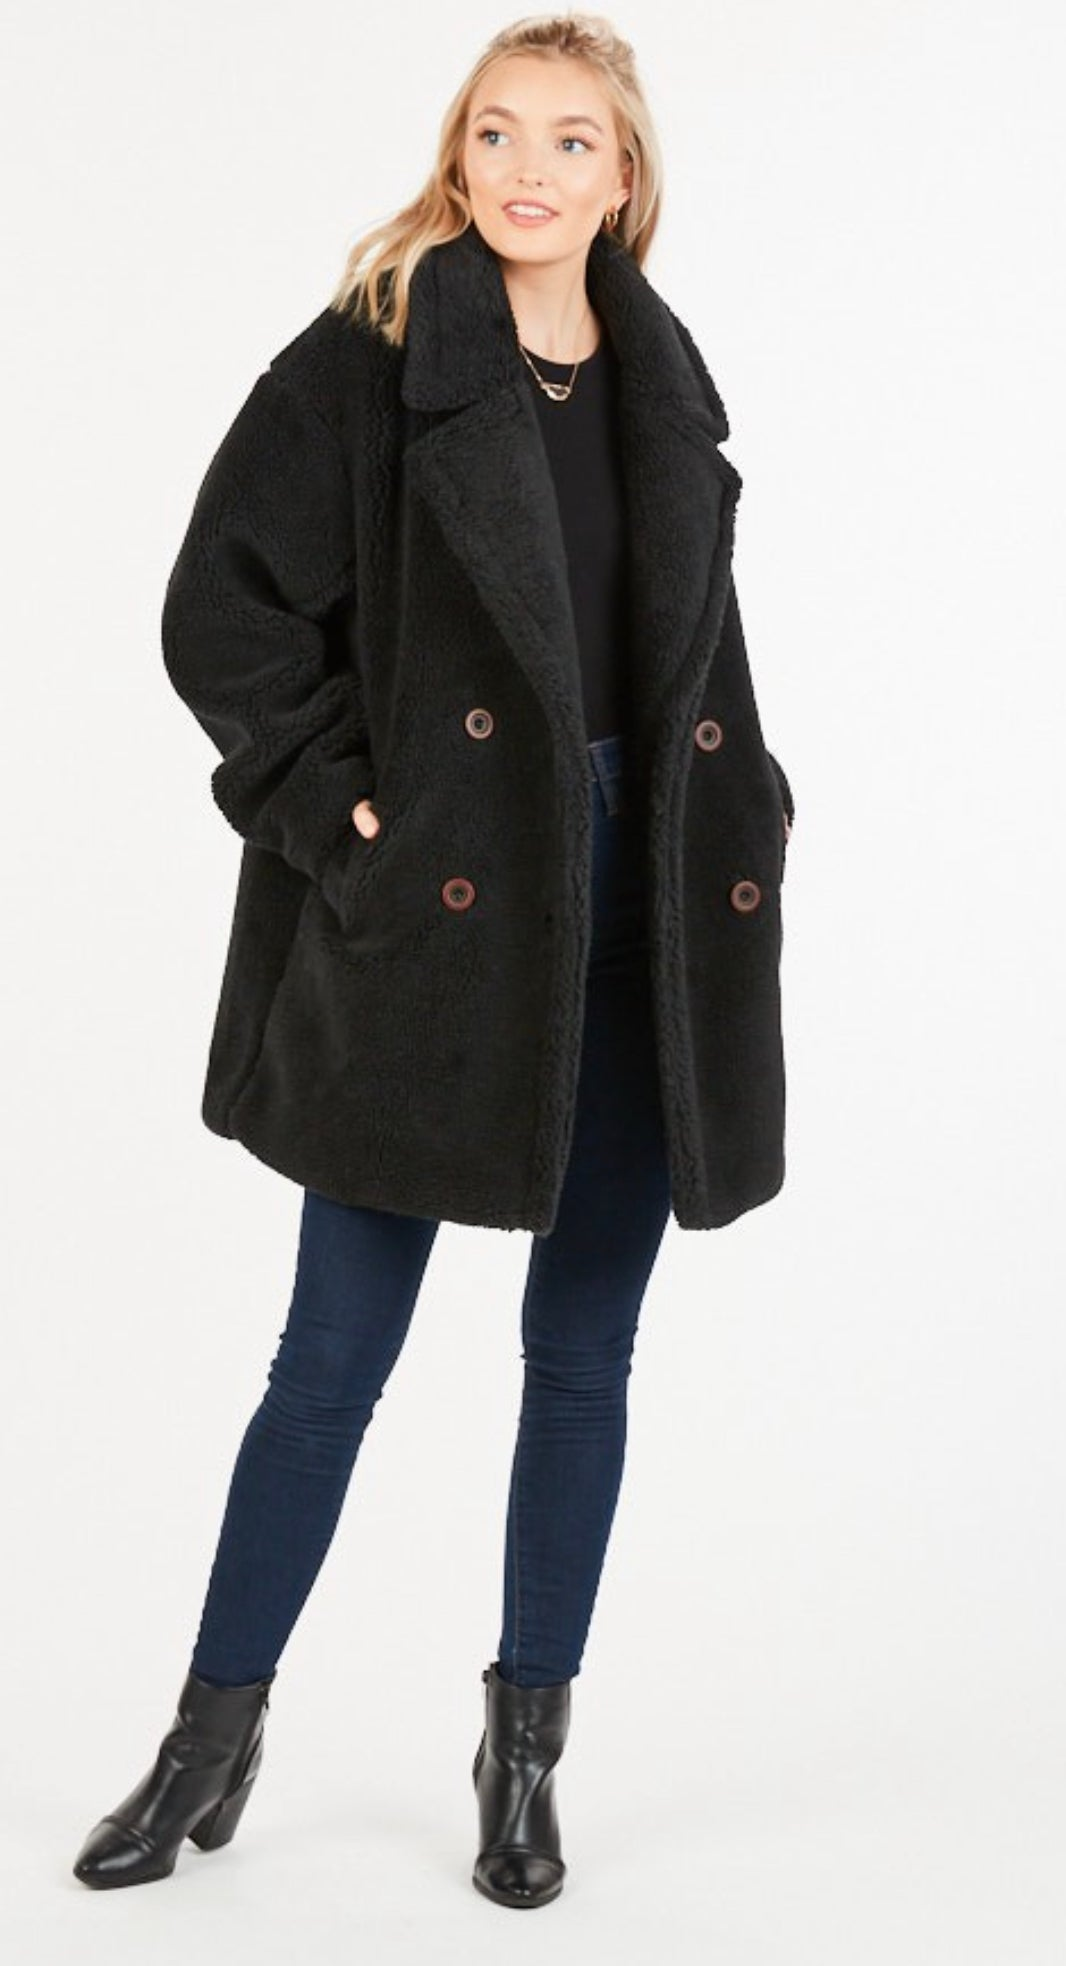 Image of OVER-SIZE TEDDY PEACOAT